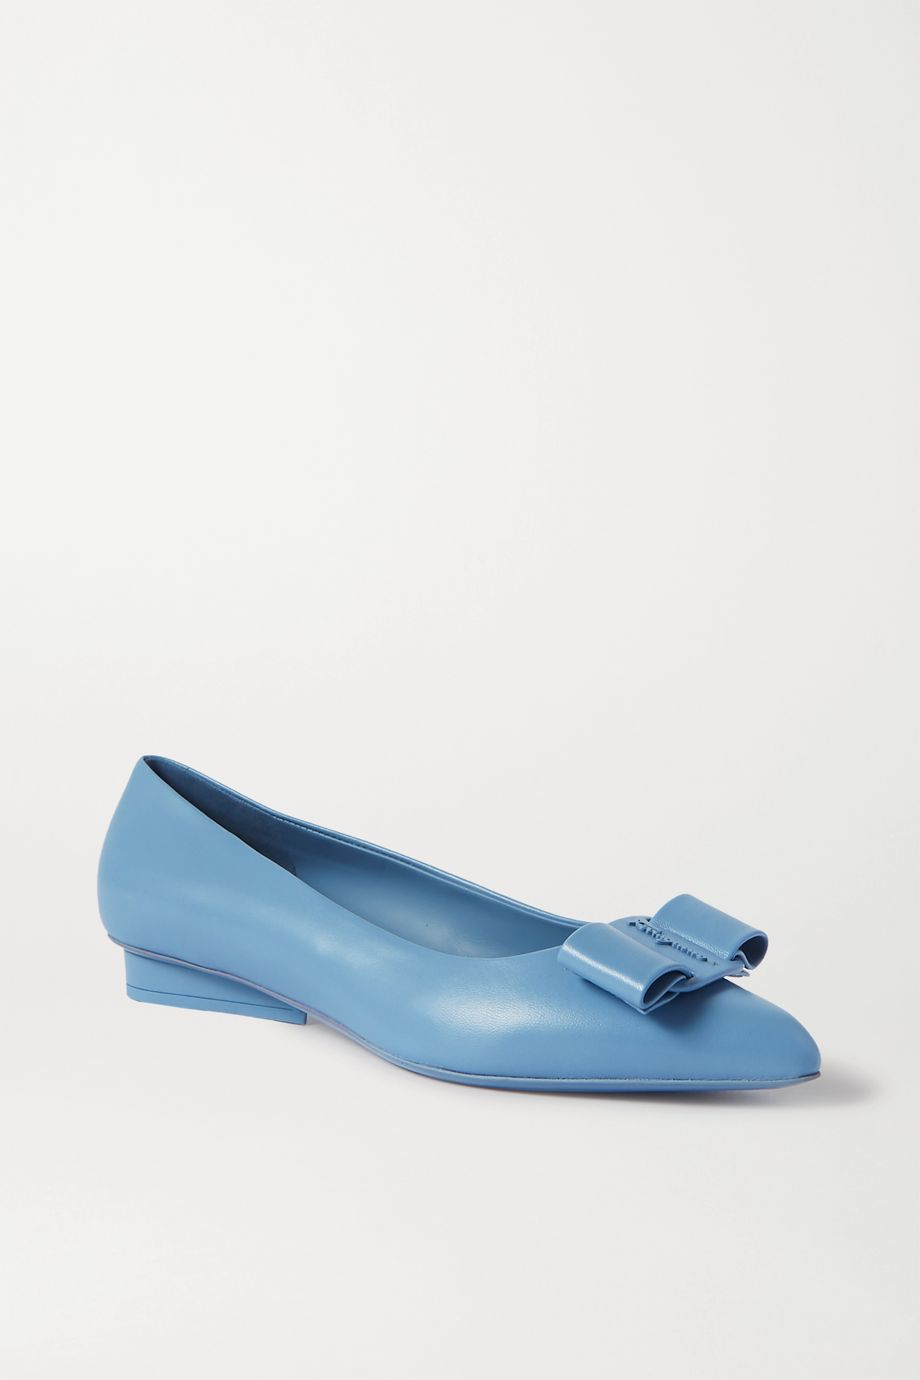 Salvatore Ferragamo Viva bow-embellished leather point-toe flats